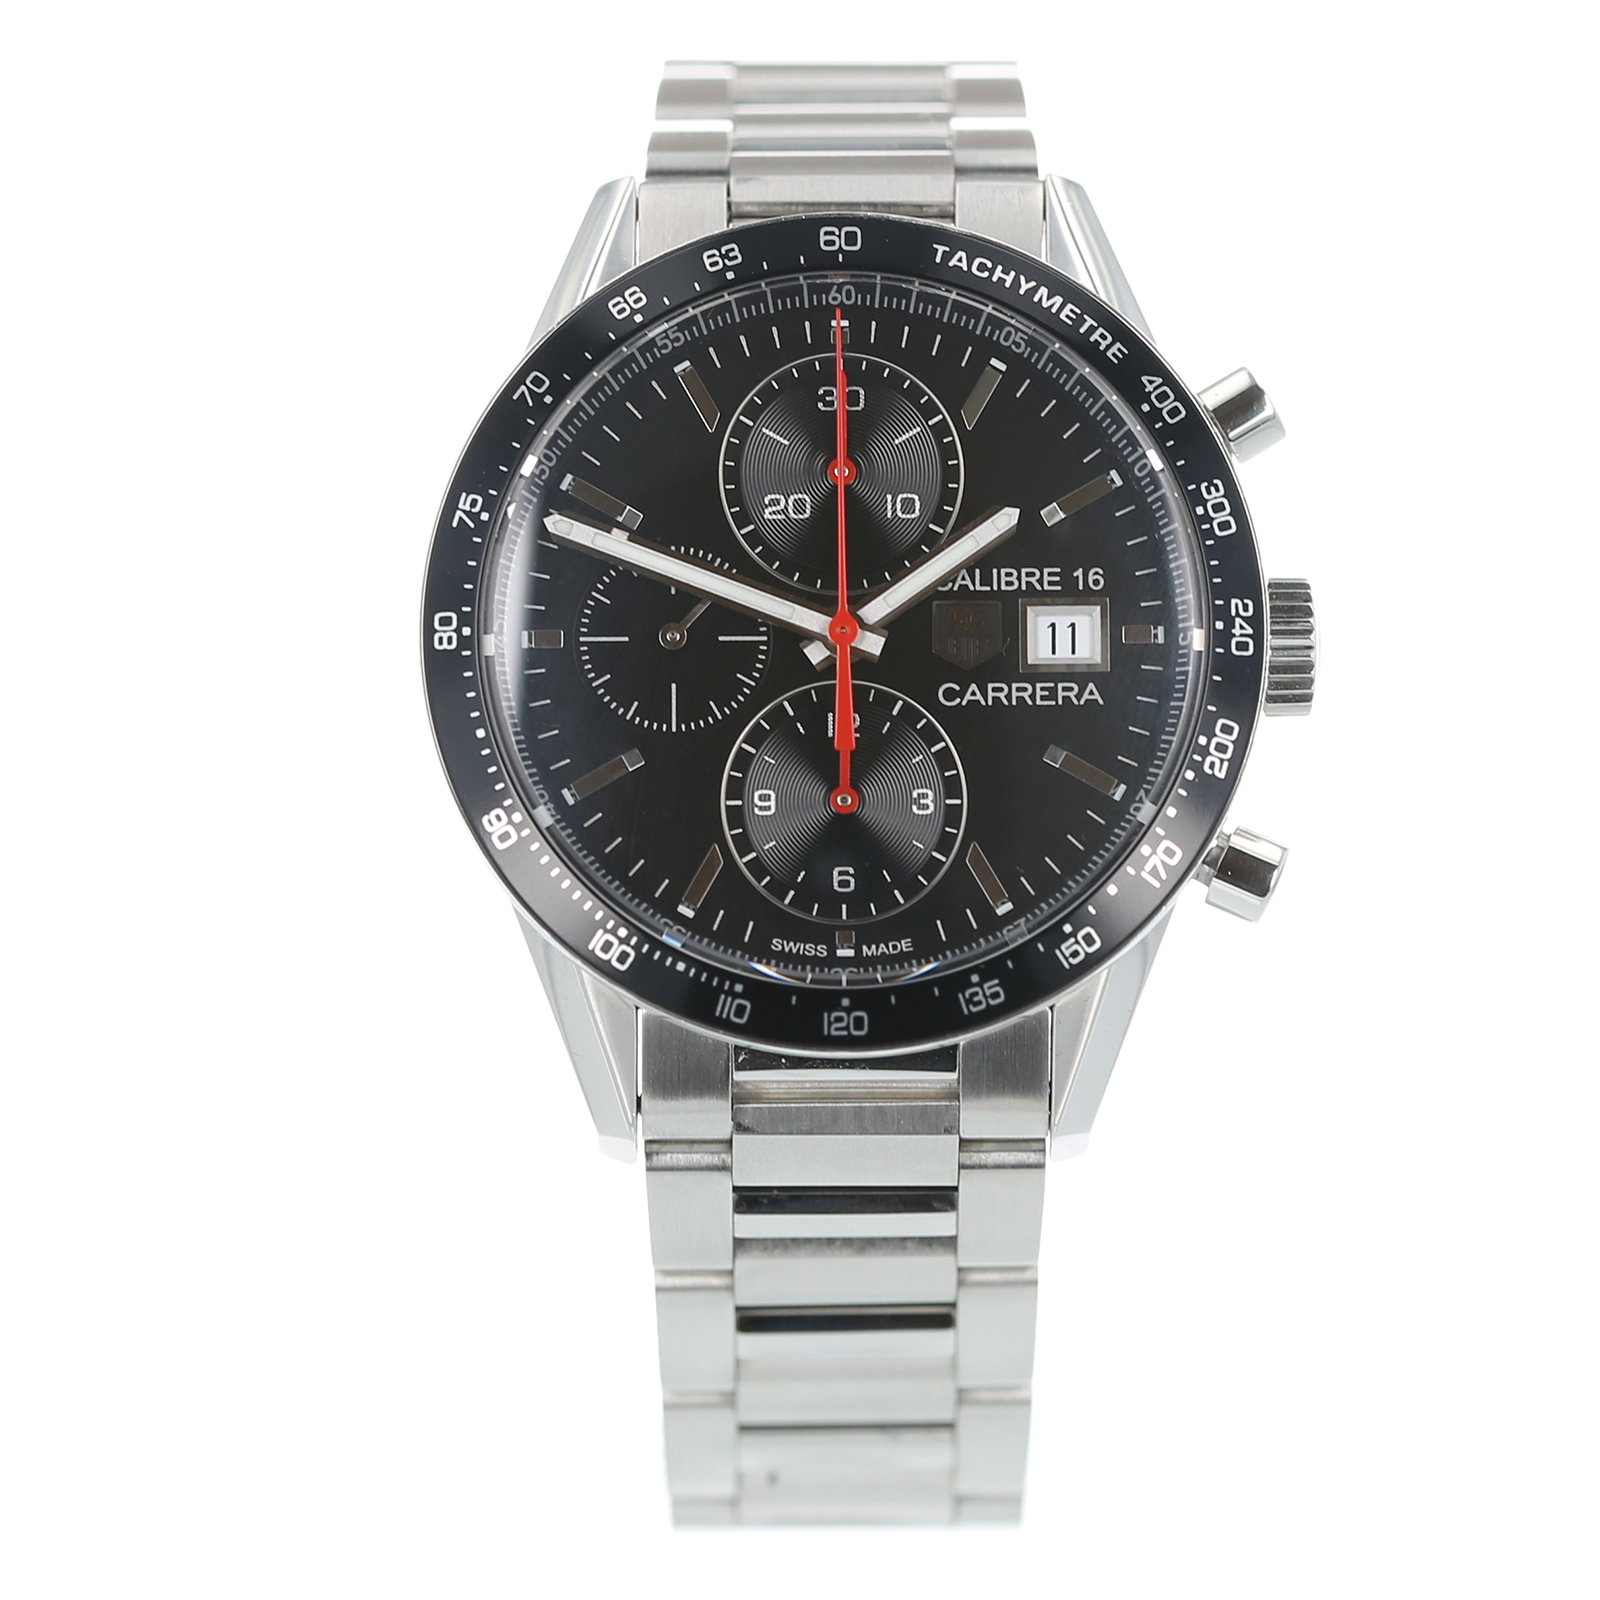 39c7a36723e15 Pre-Owned TAG Heuer Carrera Calibre 16 Mens Watch CV201AK